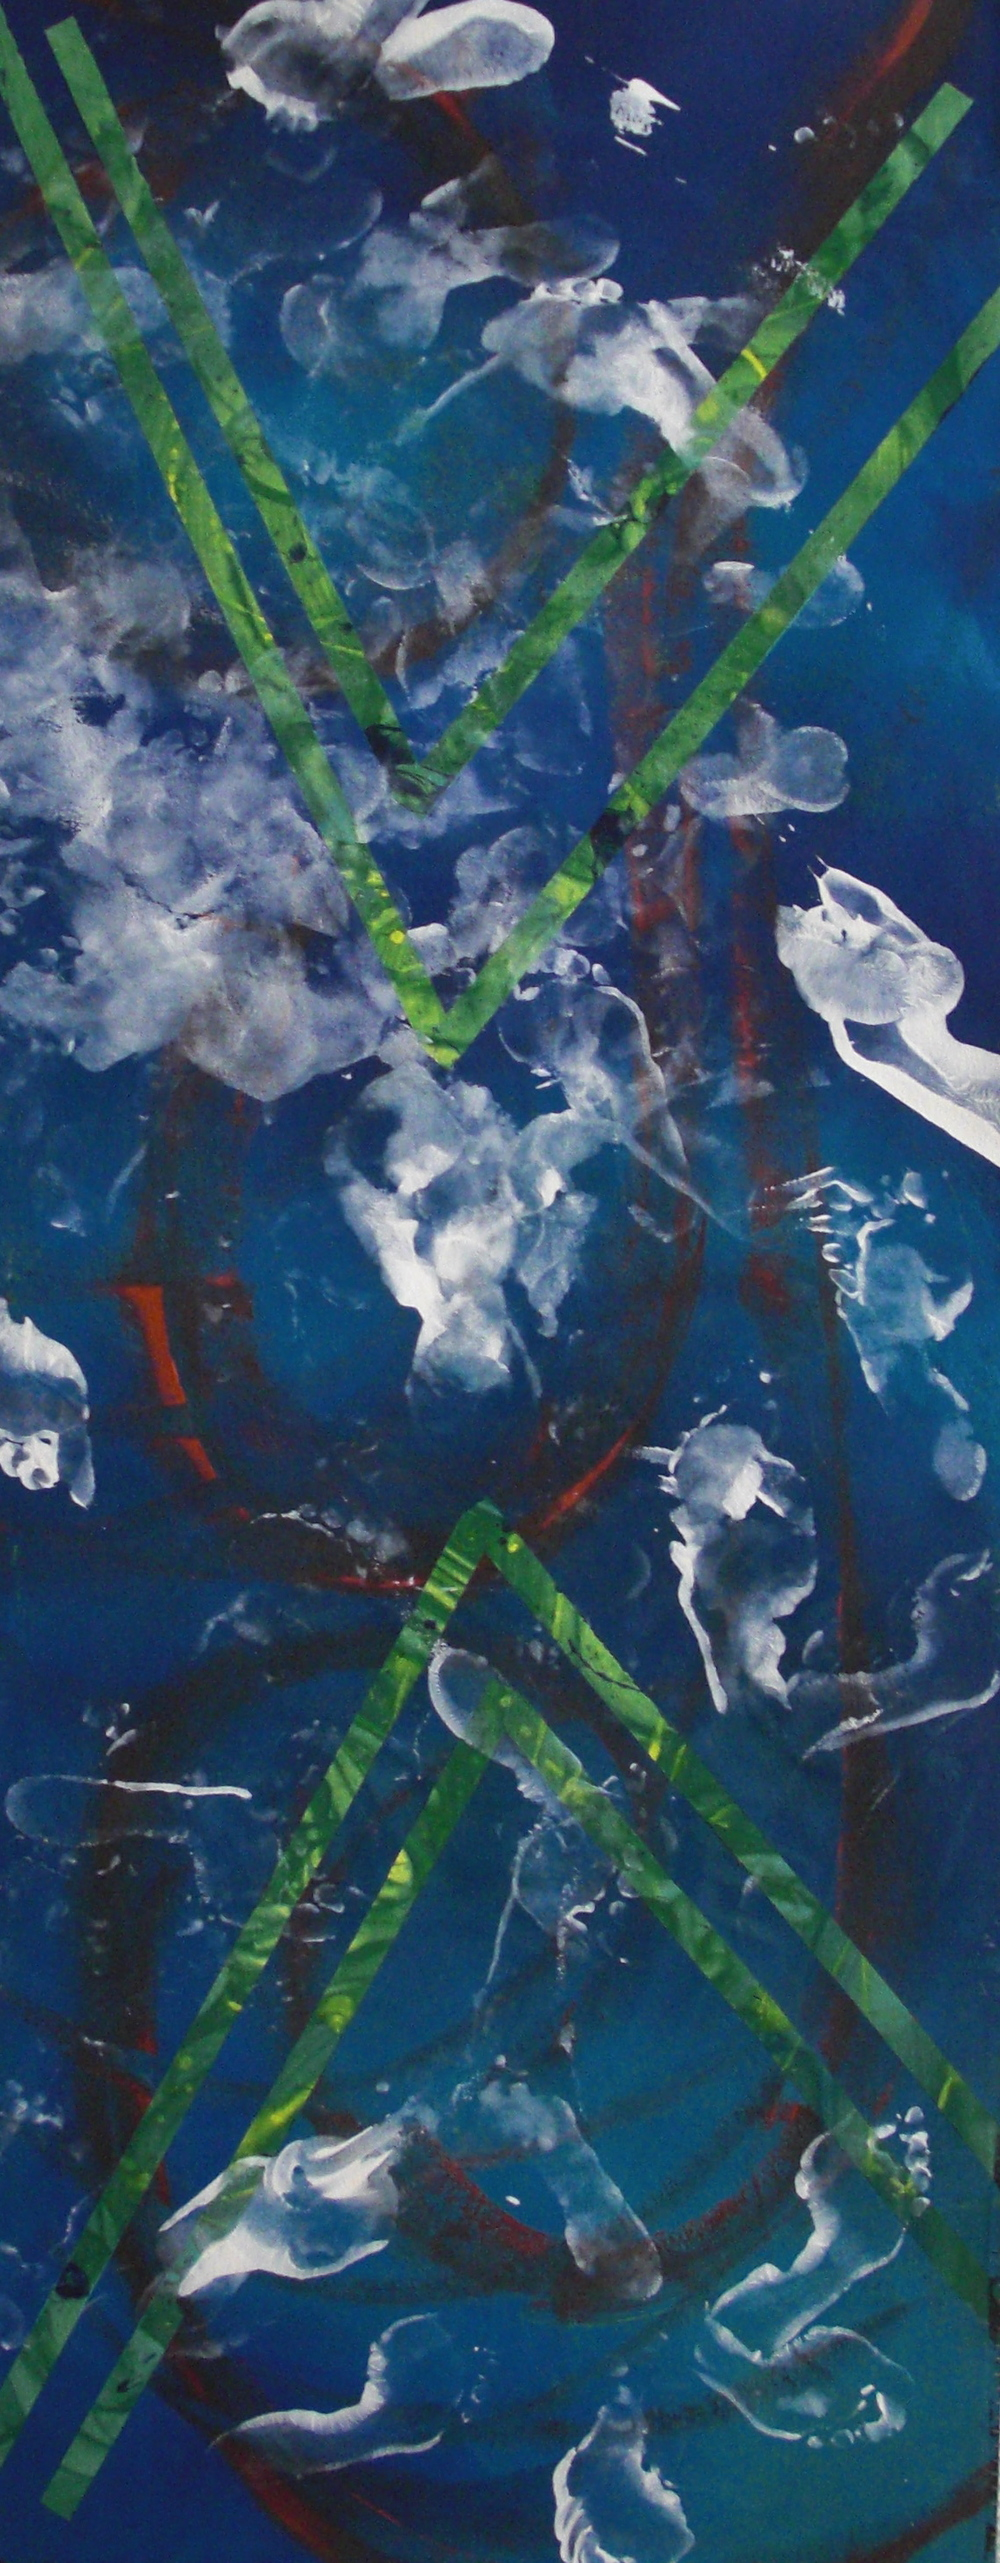 Dance #10, acrylic on canvas, 2'x6', 2010-2011